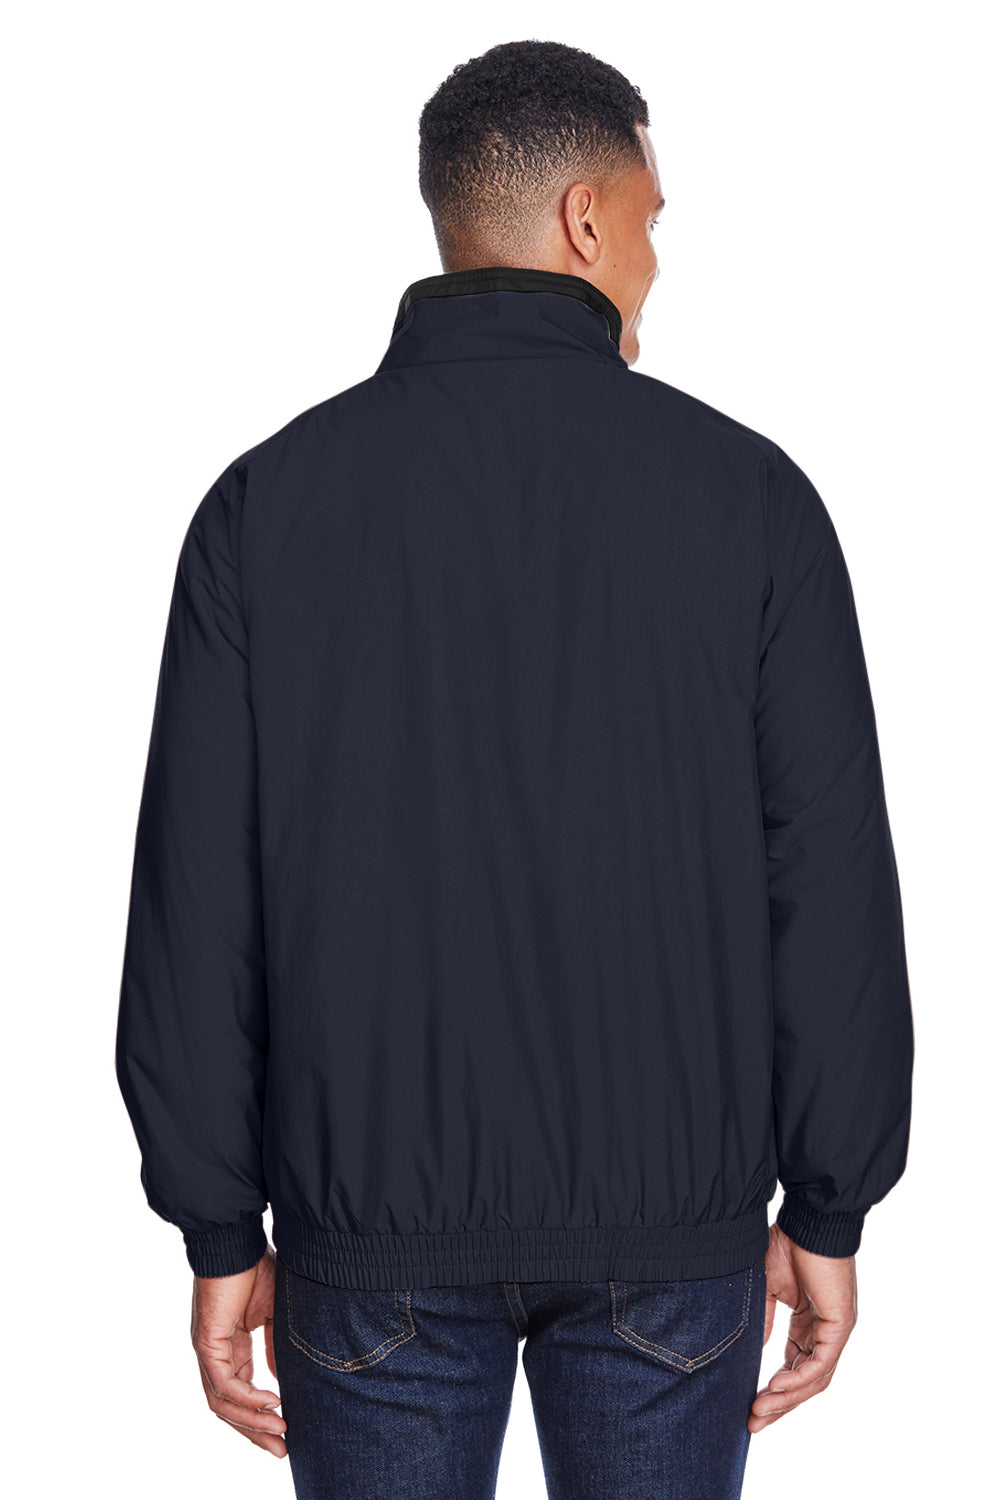 Harriton M740 Mens Wind & Water Resistant Full Zip Jacket Navy Blue Back